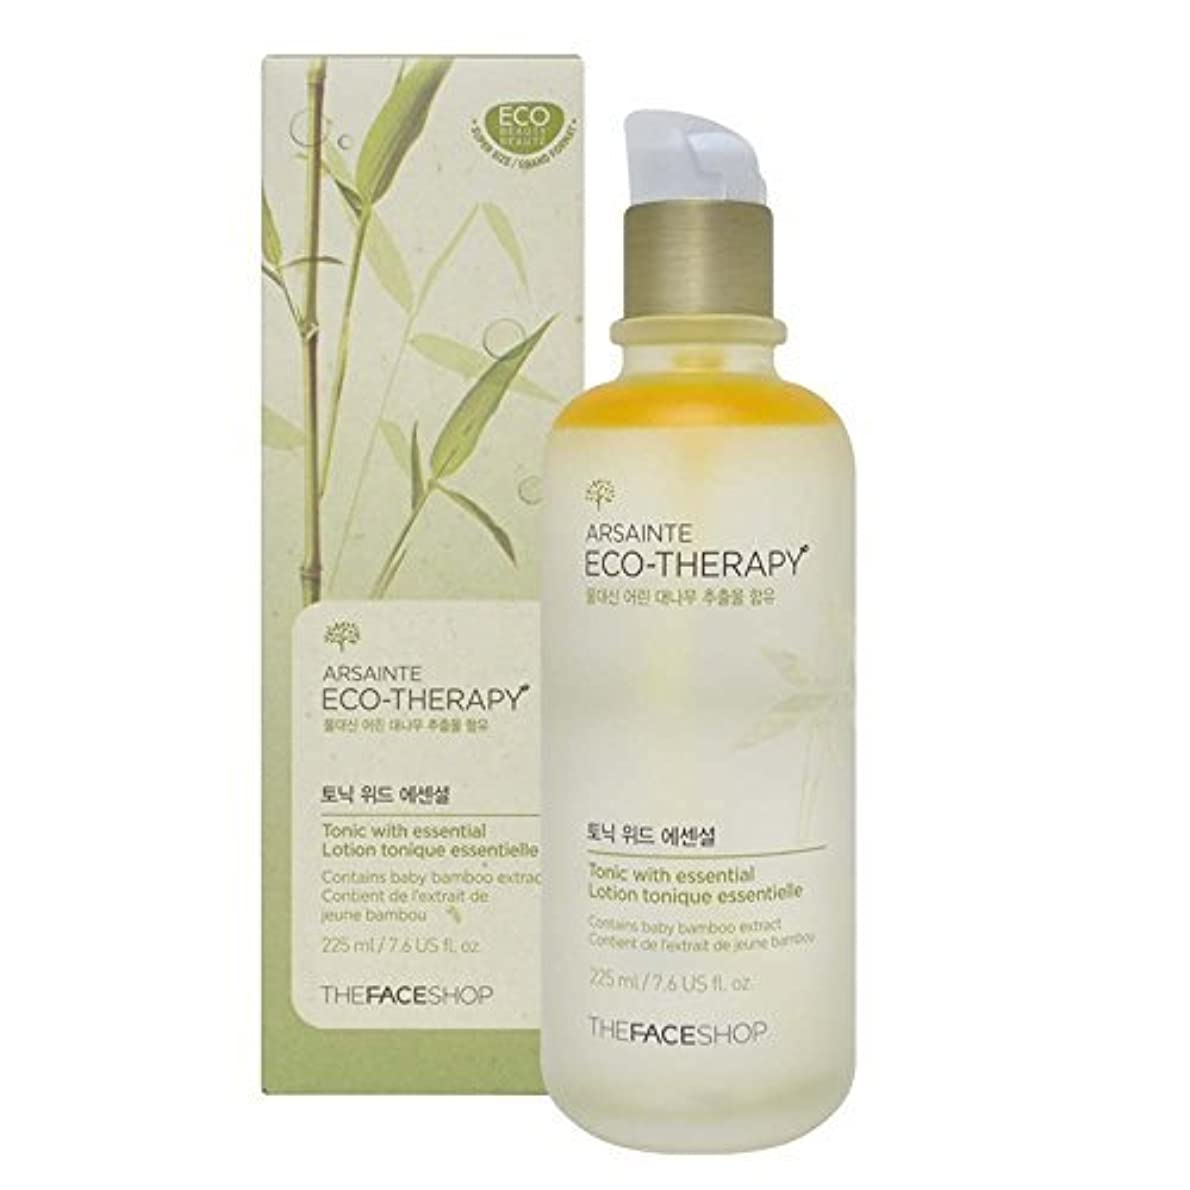 粗い上がる肖像画The Face shop Arsainte Ecotheraphy Tonic with essential Big Size 225ml [並行輸入品]